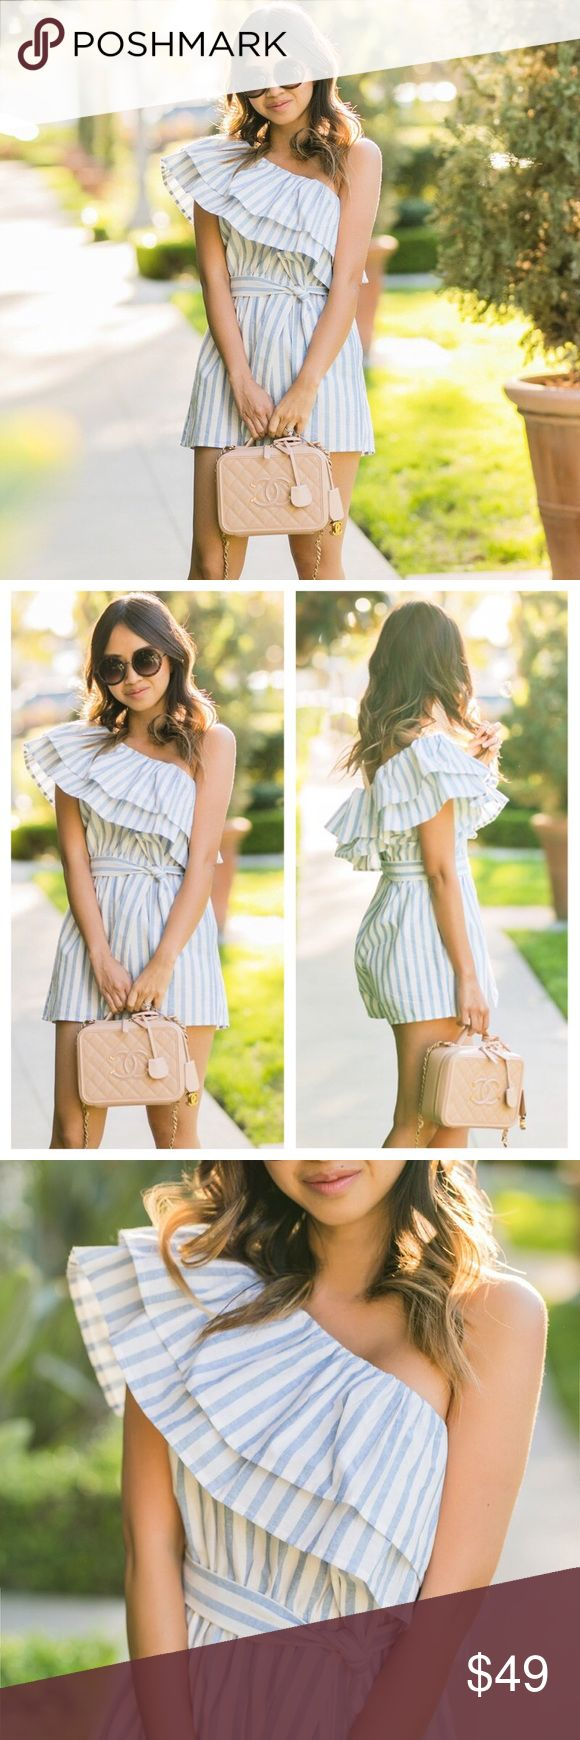 LOLITA Candystripe One Shoulder Ruffle Romper PREORDER* Ships to you next week  PRICE FIRM  The cutest blue and white candy stripe romper with a ruffled sleeve. This one shoulder beauty has a sash-tie waist. Last photo is the exact romper you'll receive.  ↝ ADD 3+ ITEMS TO A BUNDLE AND RECEIVE 10% OFF!   Tags: romper, jumpsuit, jumper, striped, stripes stripe, candy stripe, summer, spring, cute, lolita, ruffle, off one shoulder Pants Jumpsuits & Rompers